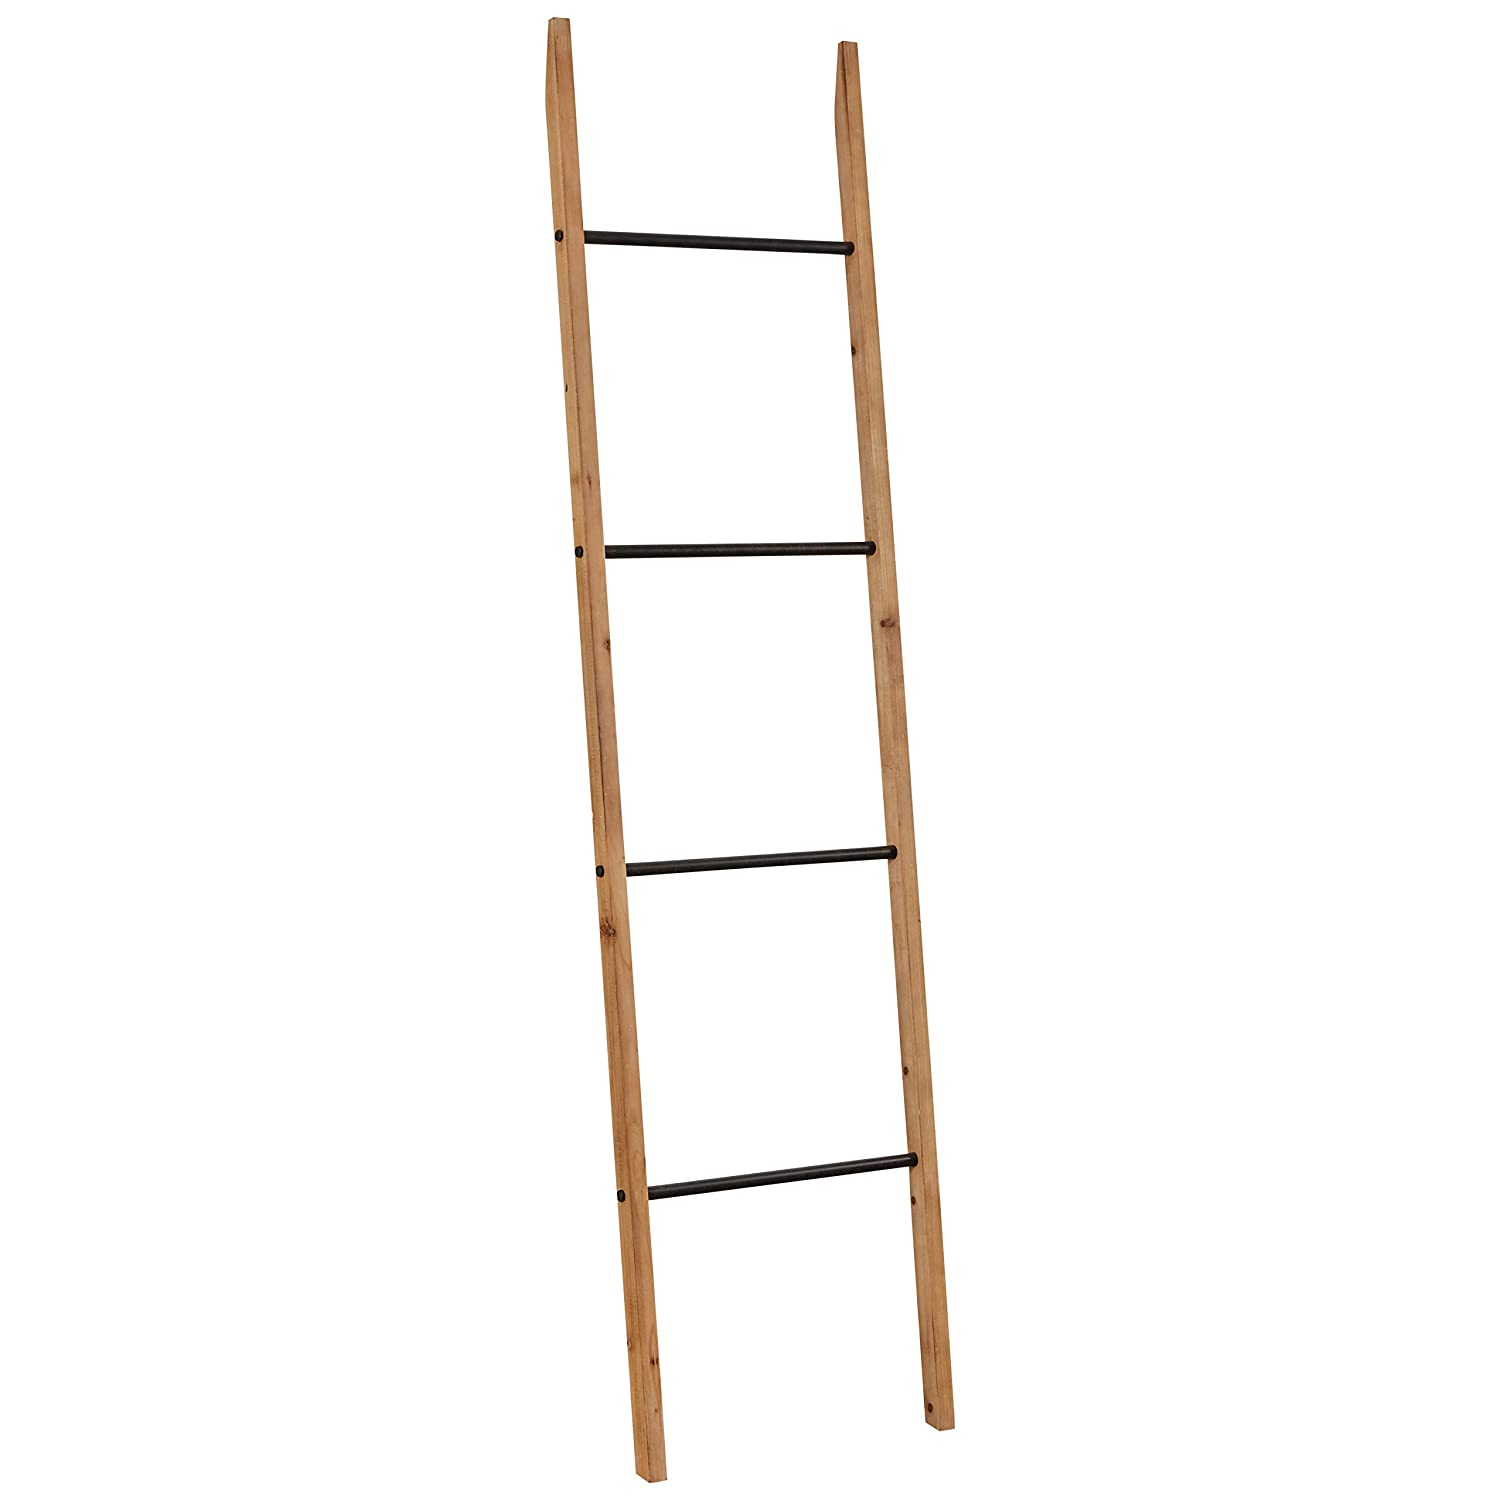 "Rivet Contemporary Fir Decorative Blanket Ladder with Iron Rungs - 71.65""H, Black and Natural Wood"